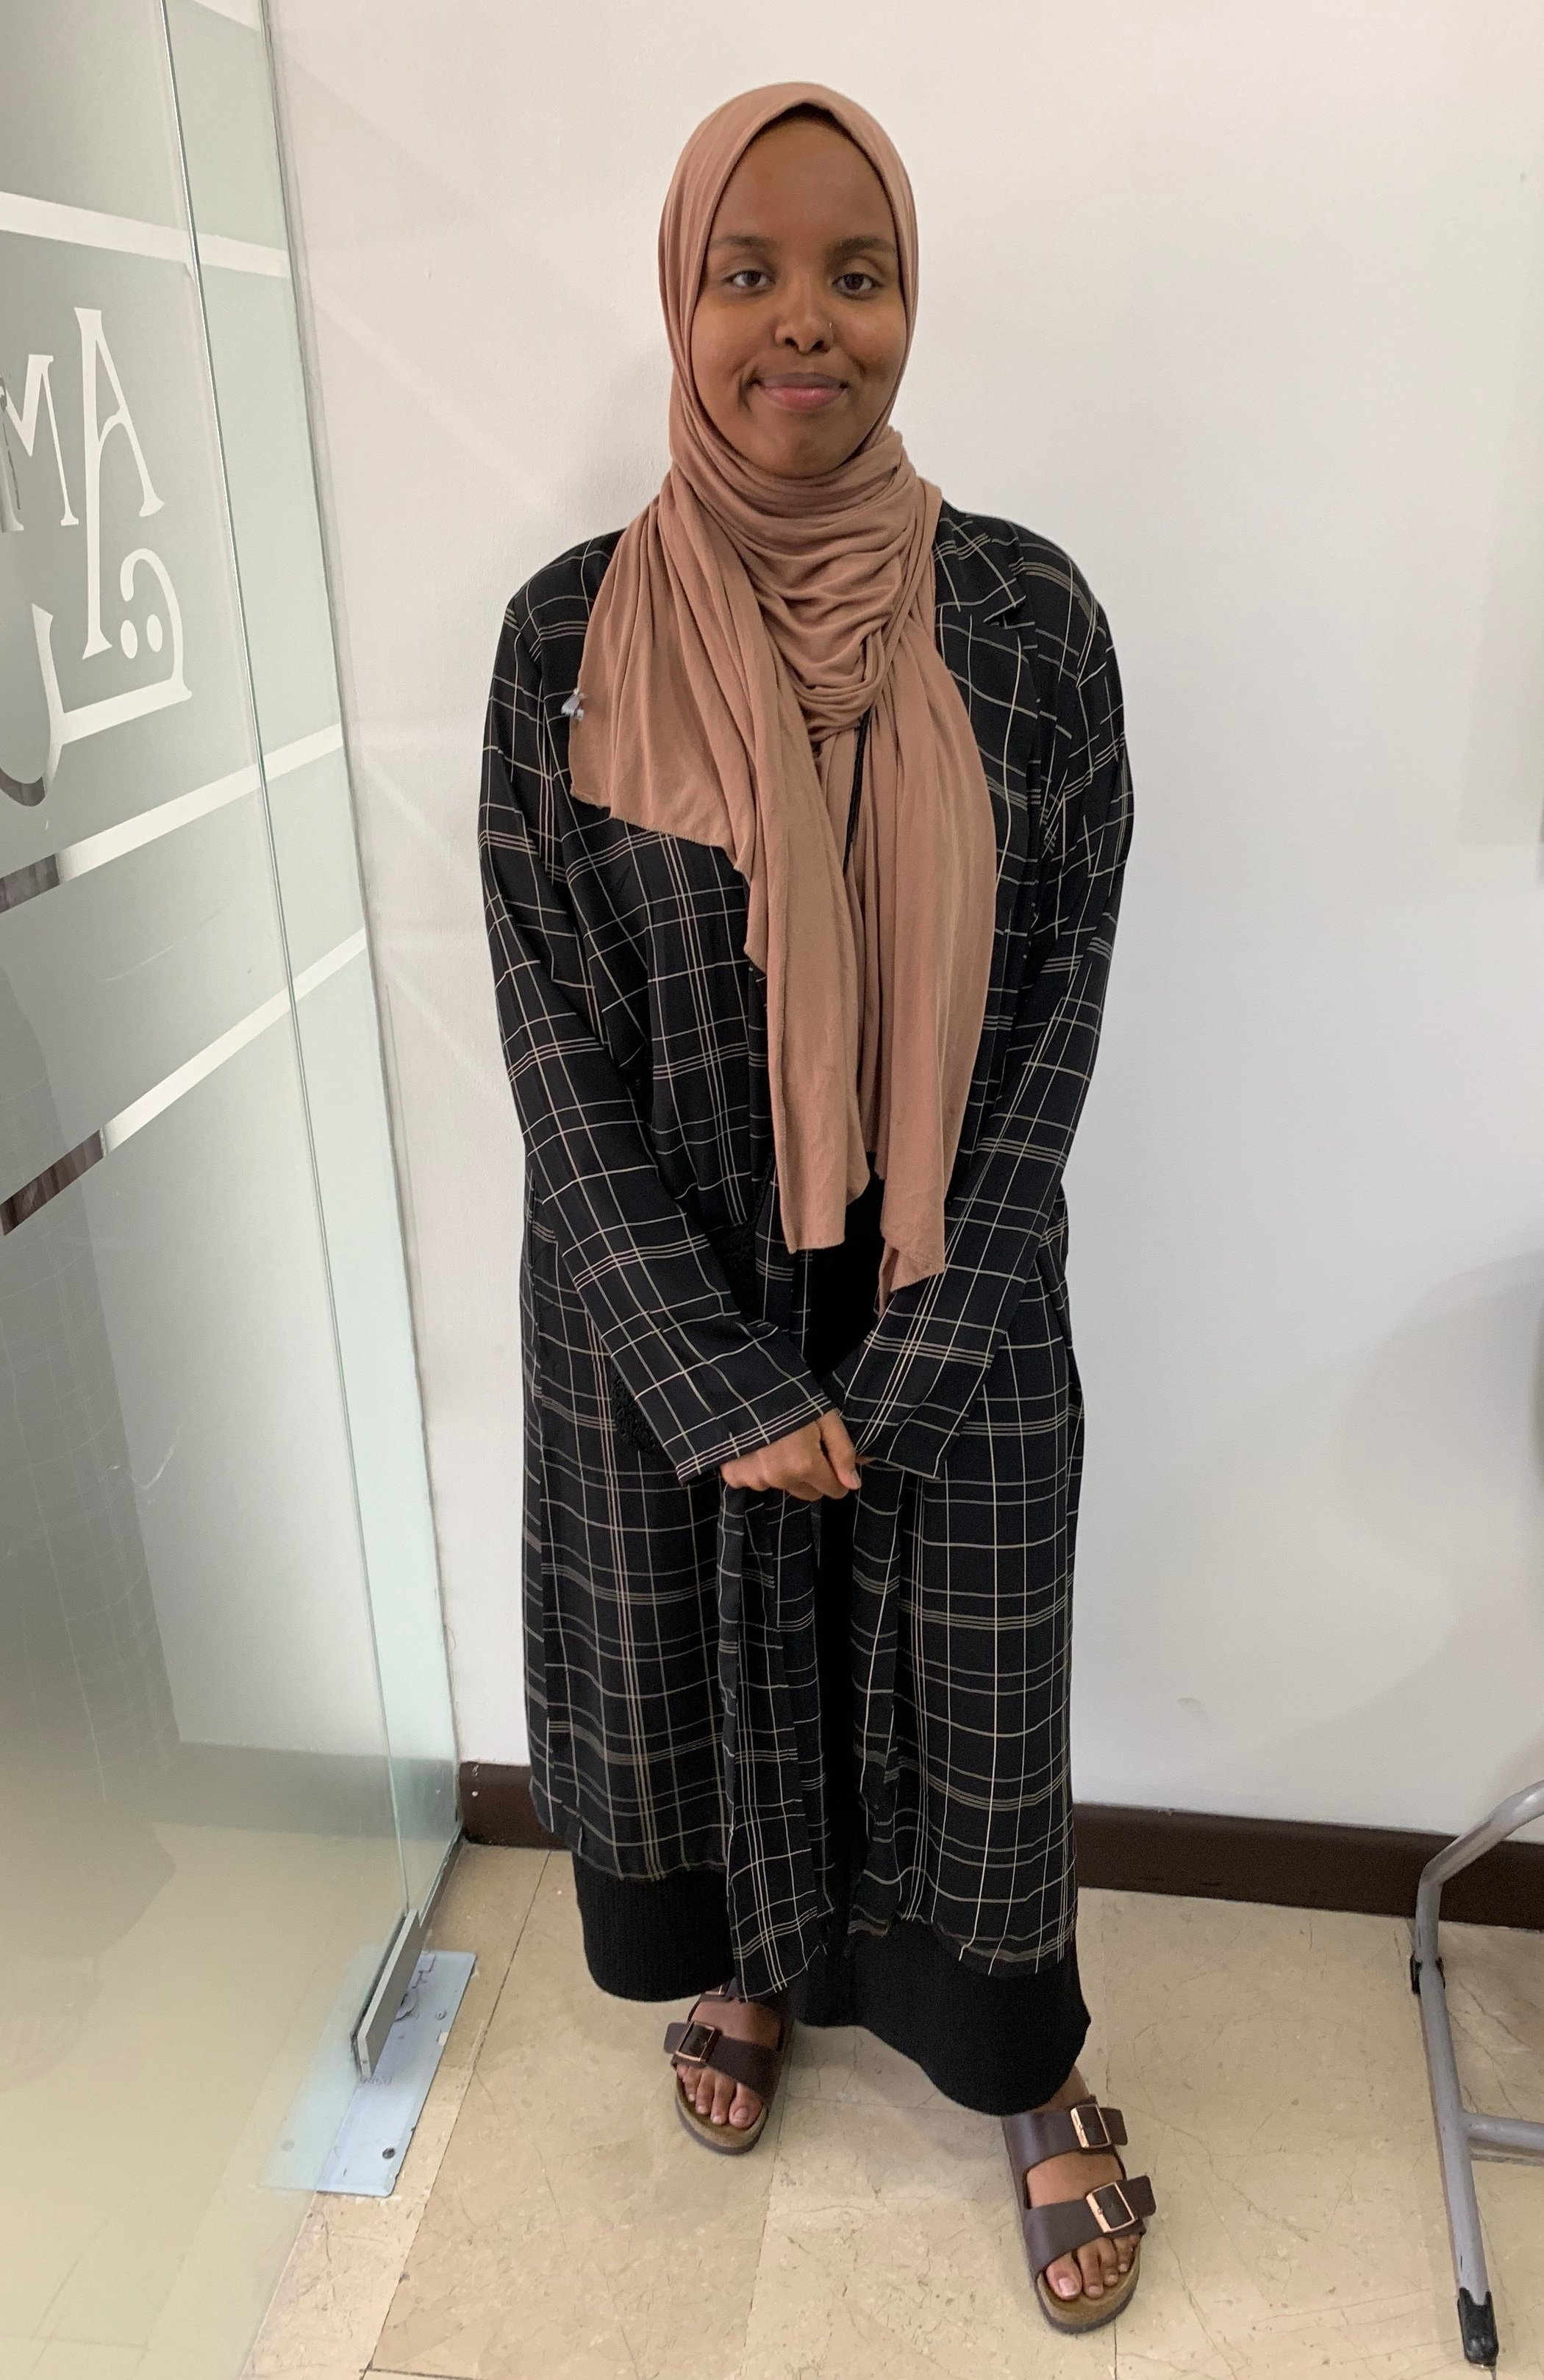 If you wear a hijab, one thing that I have noticed a lot of Jordanian women do is do all black and a colorful headscarf. It is very easy to do and that pop of color is very nice. Again it's all about staples here. What can you wear more than once and on different occasions? Here my friend also does a wonderful job of layering. You can see her long jacket; that is a great way to cover perhaps a shirt with no sleeves or just to spice up an outfit. Honestly obsessed with this friend's style. Photo credit: Jones, 2019